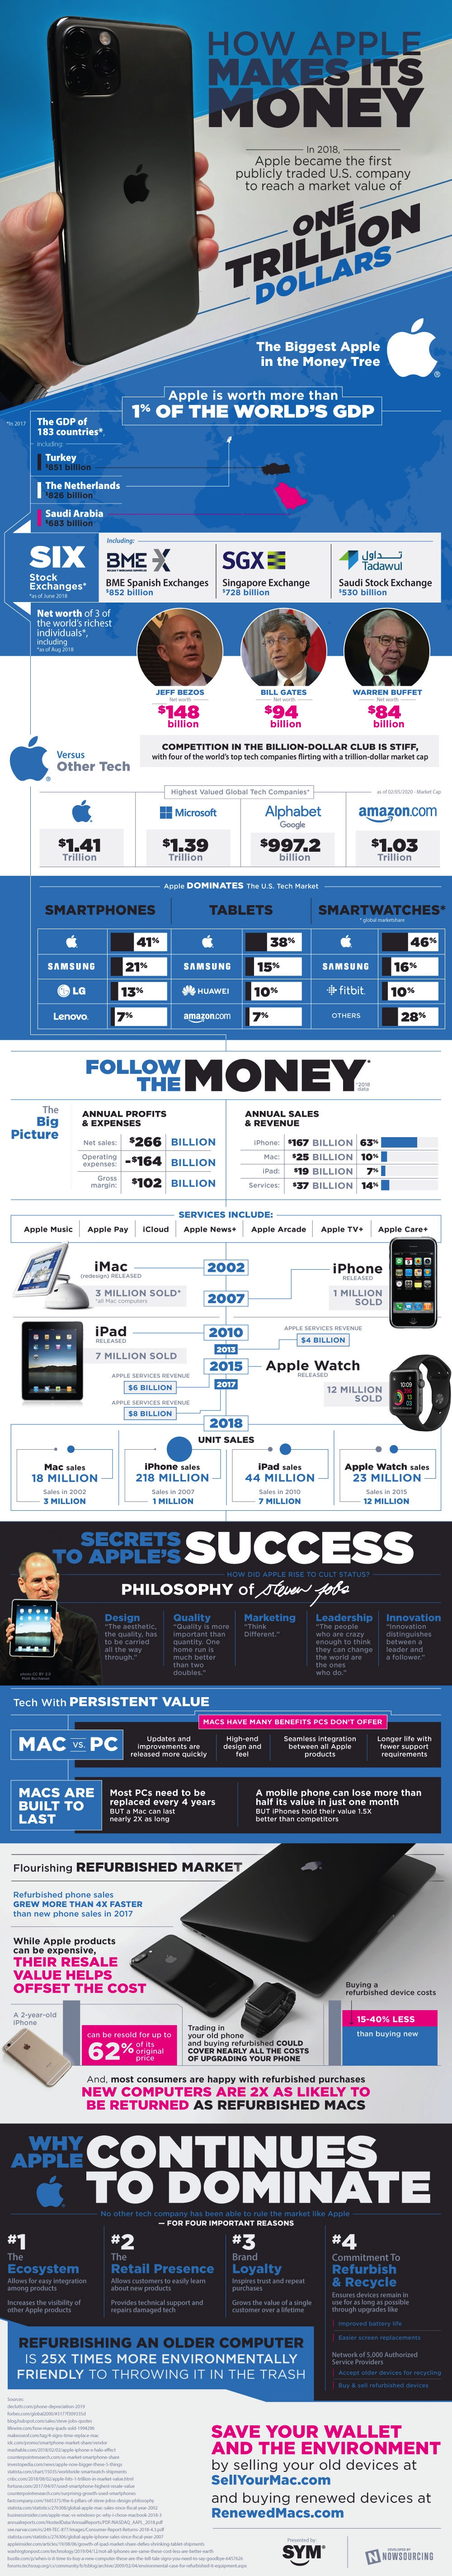 SellYourMac.com - How Apple Makes Its Money